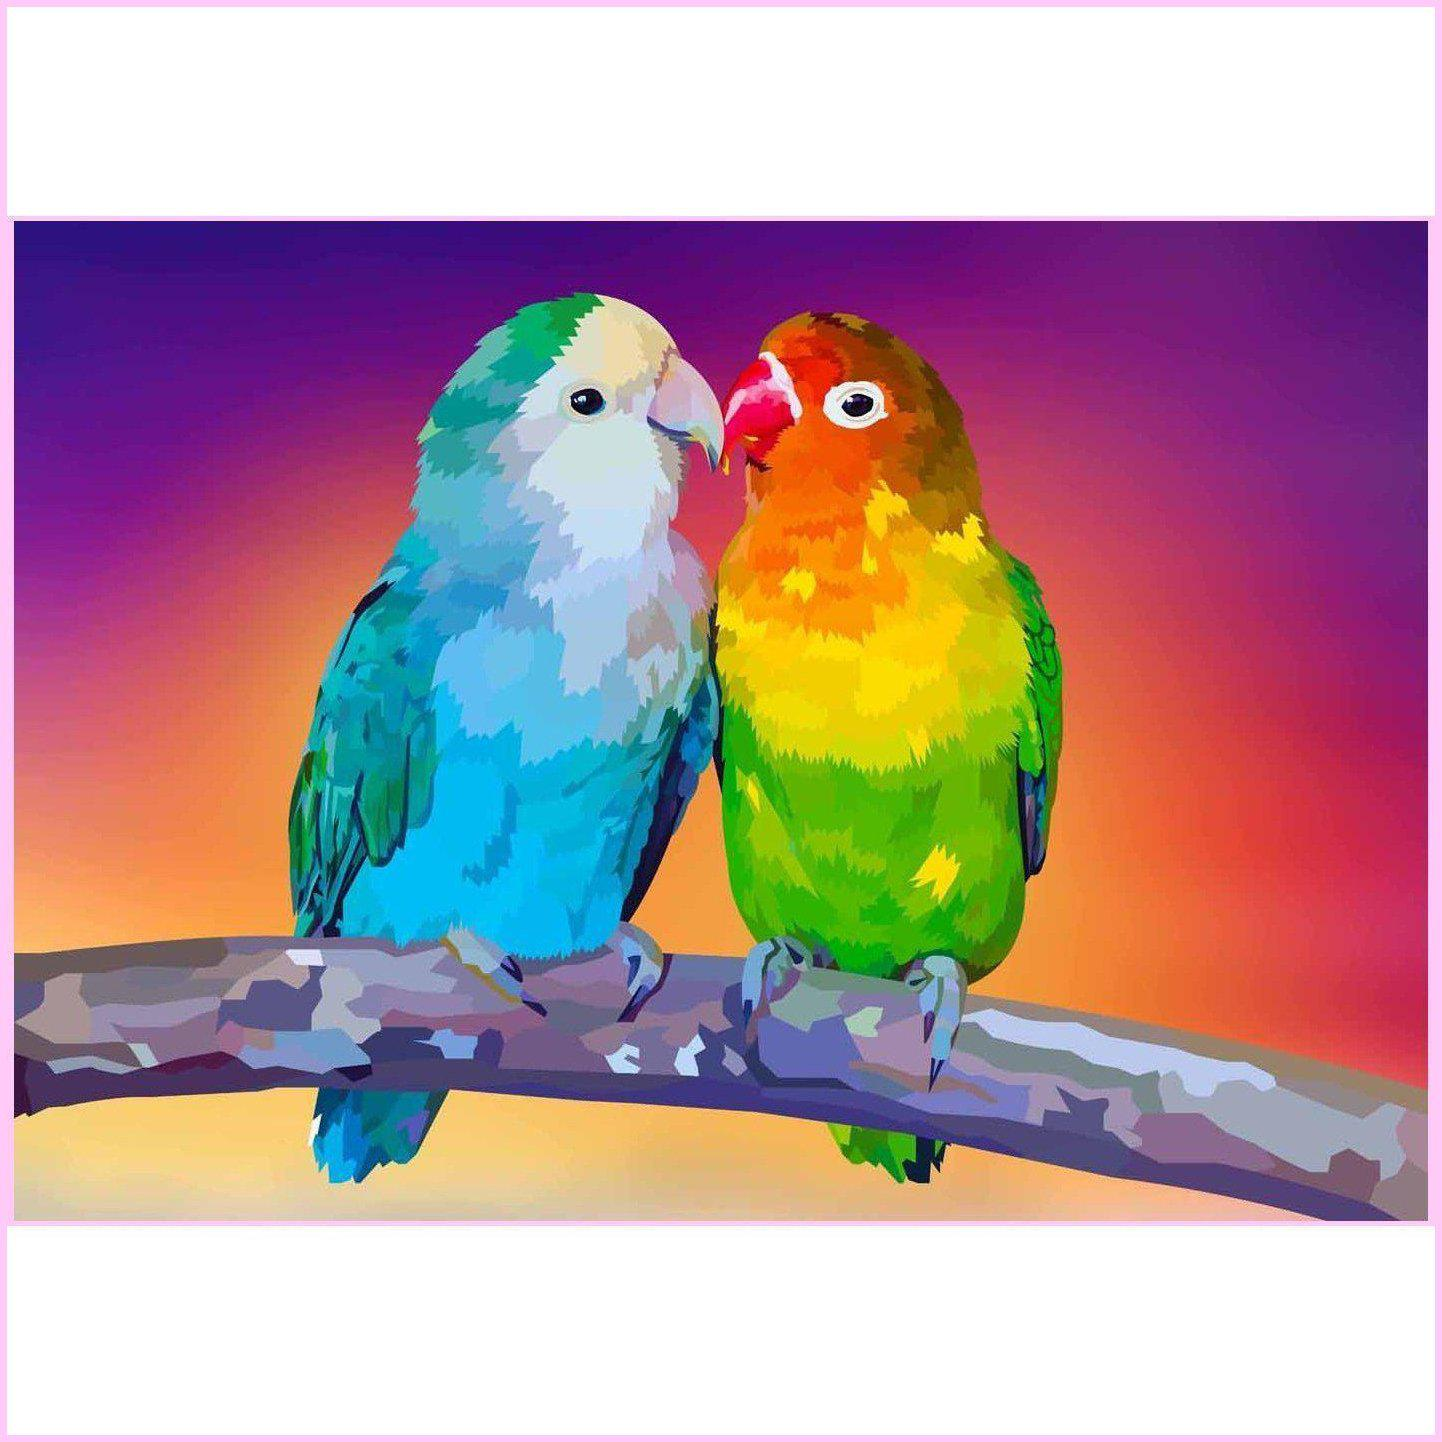 Cuddling Colorful Birds-Diamond Painting Kit USPS-35x50cm (14x20 in)-Square-Heartful Diamonds